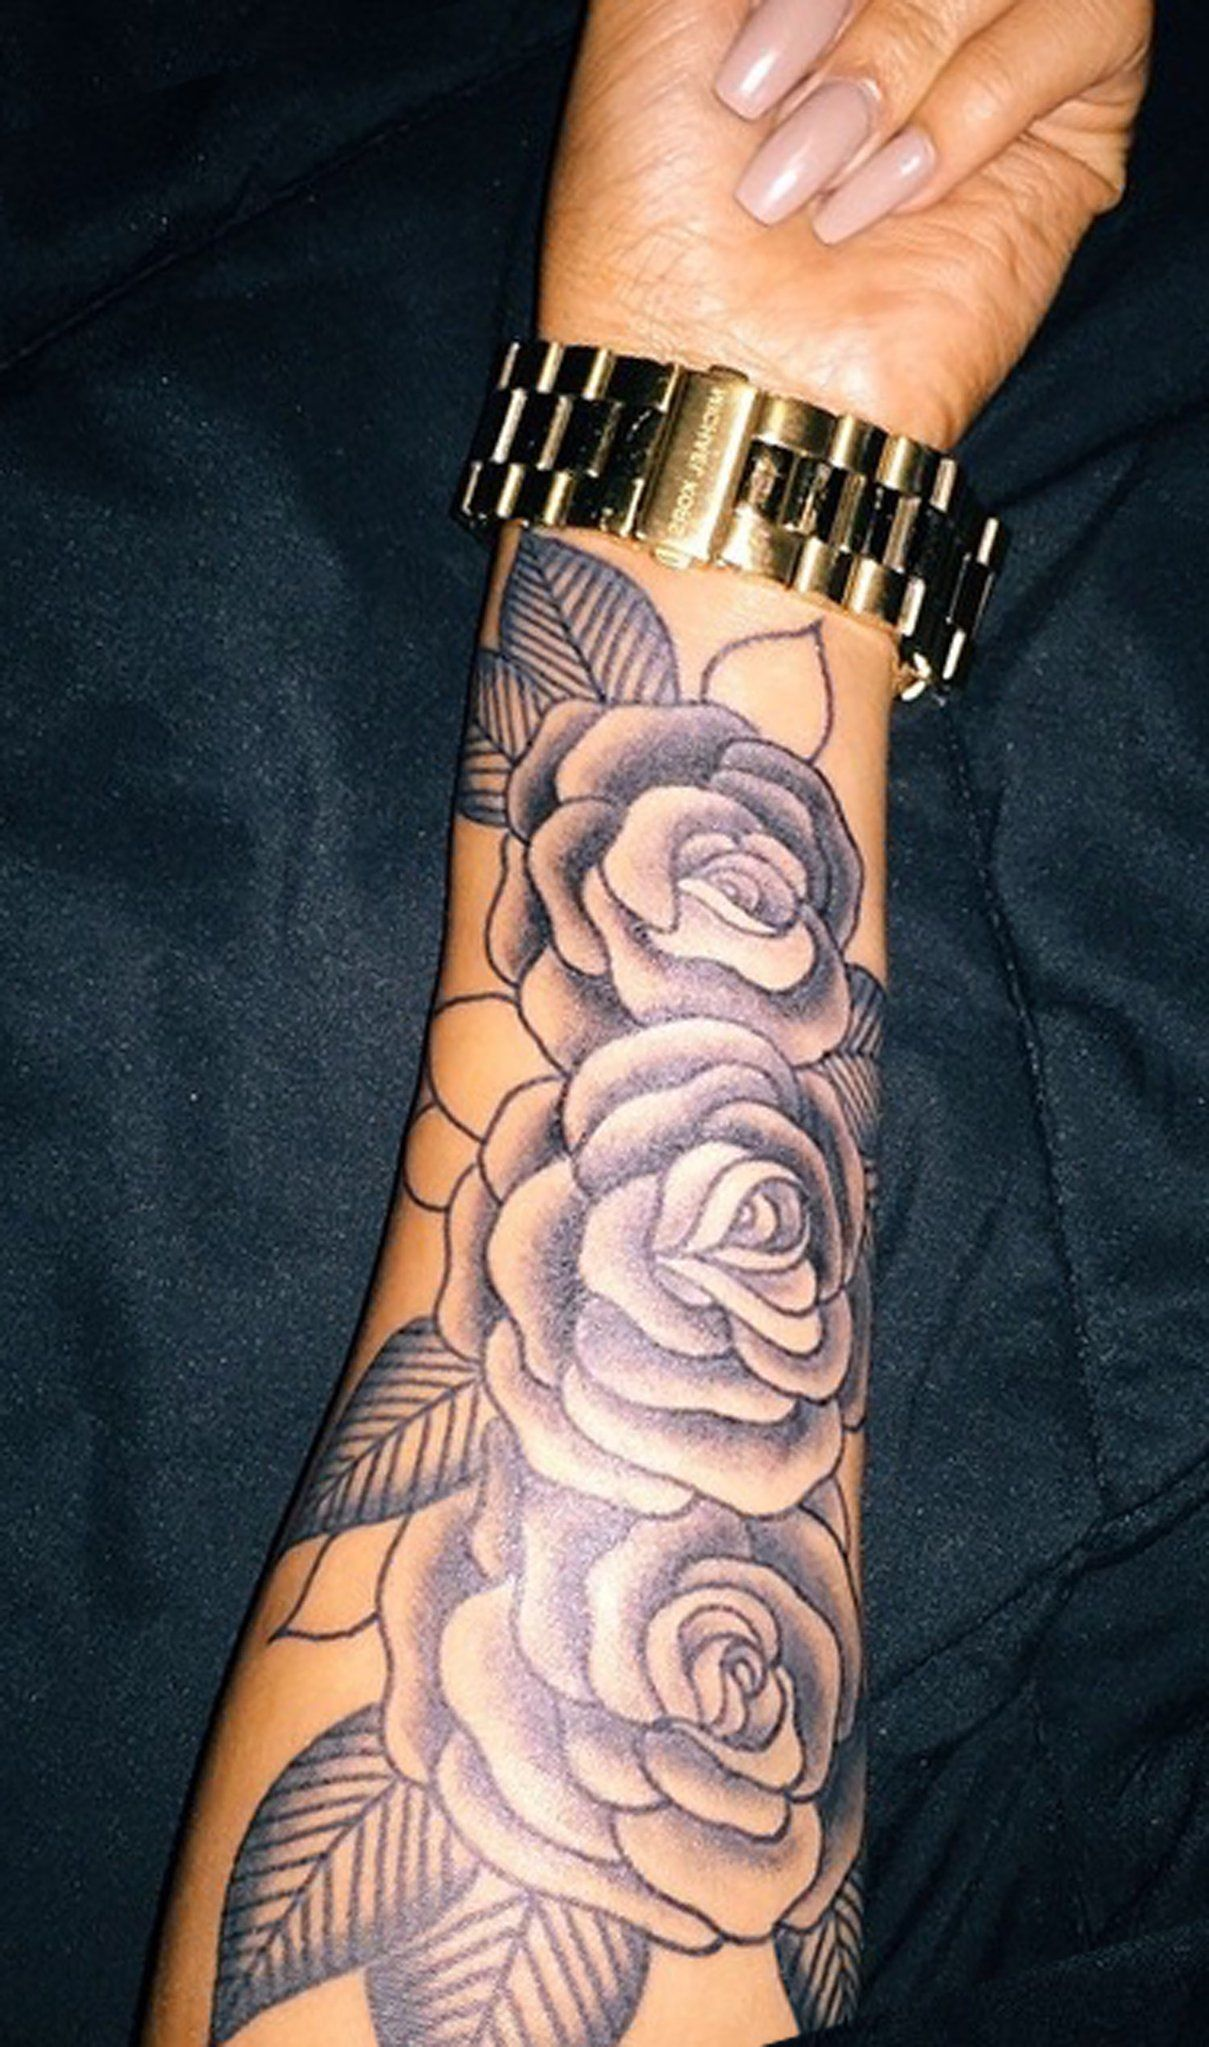 Realistic Vintage Rose Forearm Tattoo Ideas For Women Black Floral Flower Arm Sle Forearm Tattoo Women Tattoos For Women Half Sleeve Unique Tattoos For Women